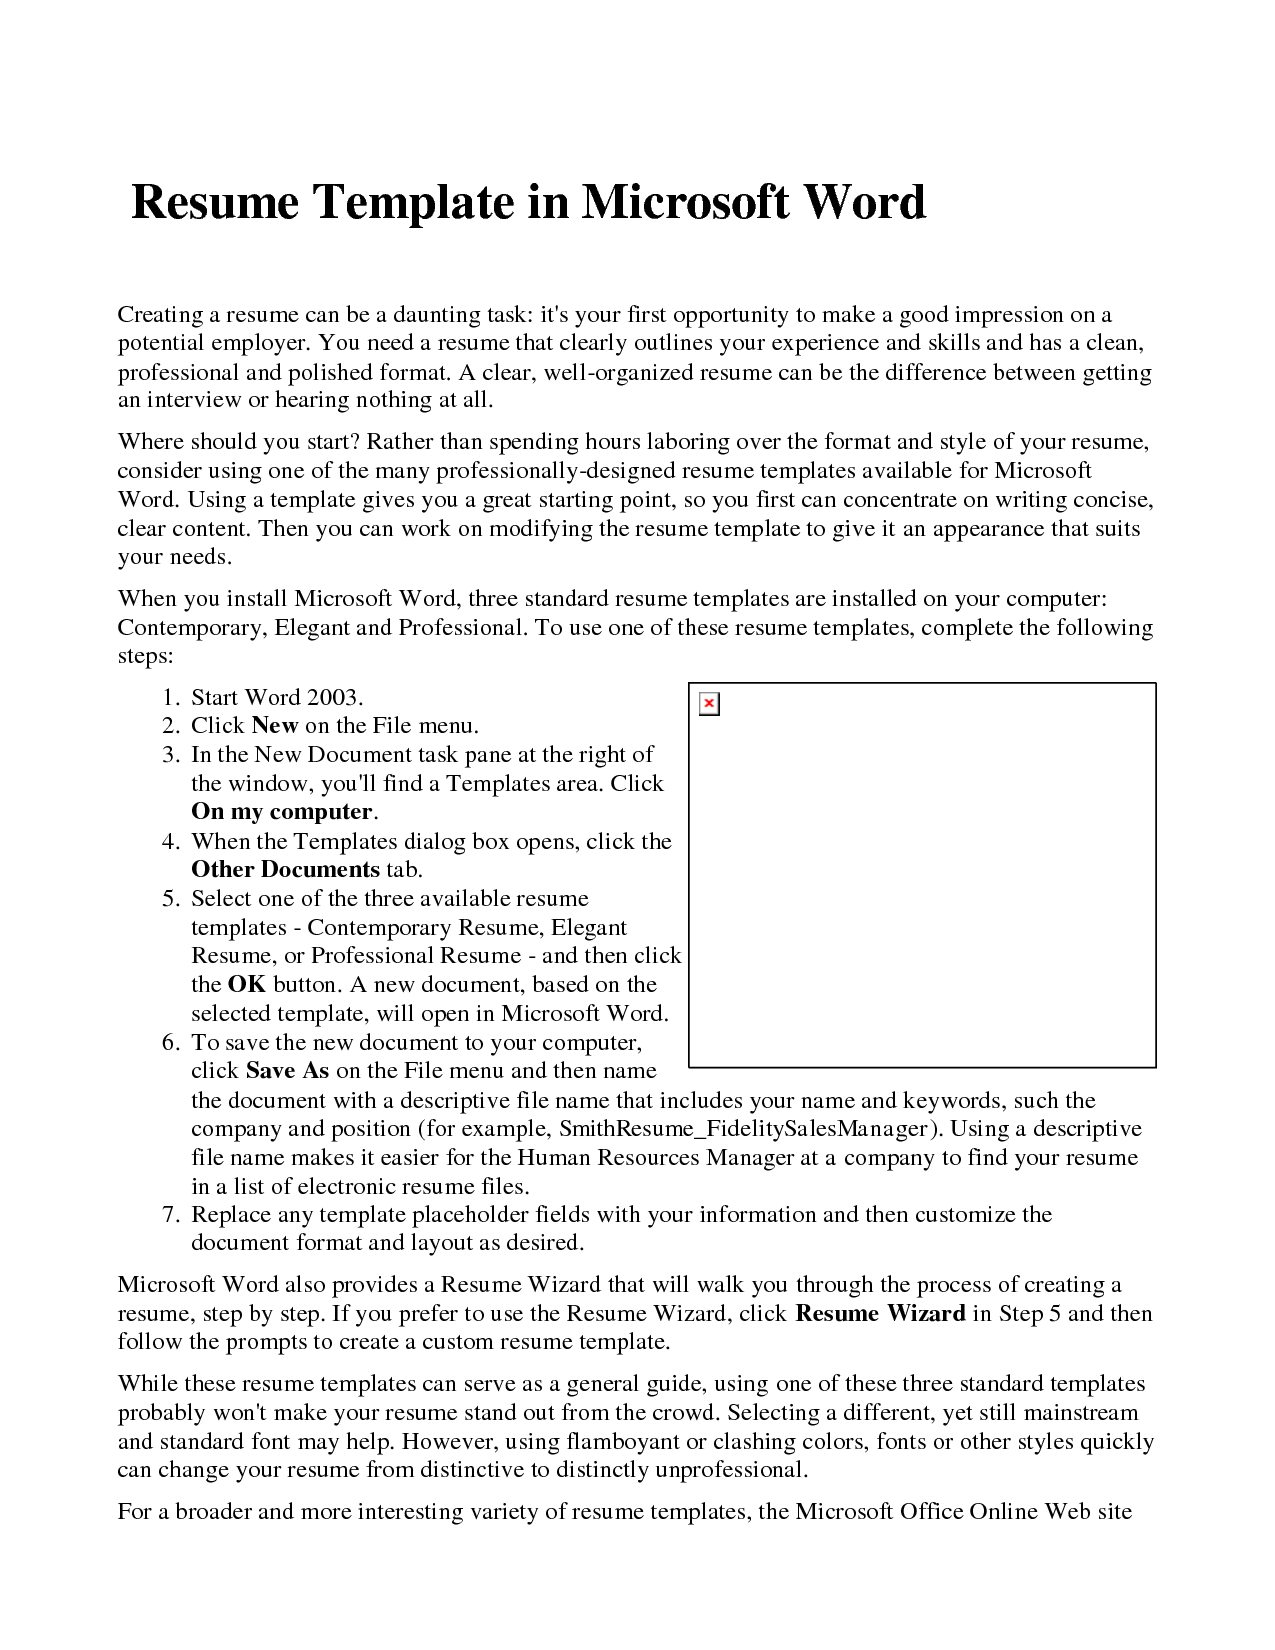 Resume Template For Microsoft Word 2010 Resume Templates Microsoft Word  Httpwwwresumecareer